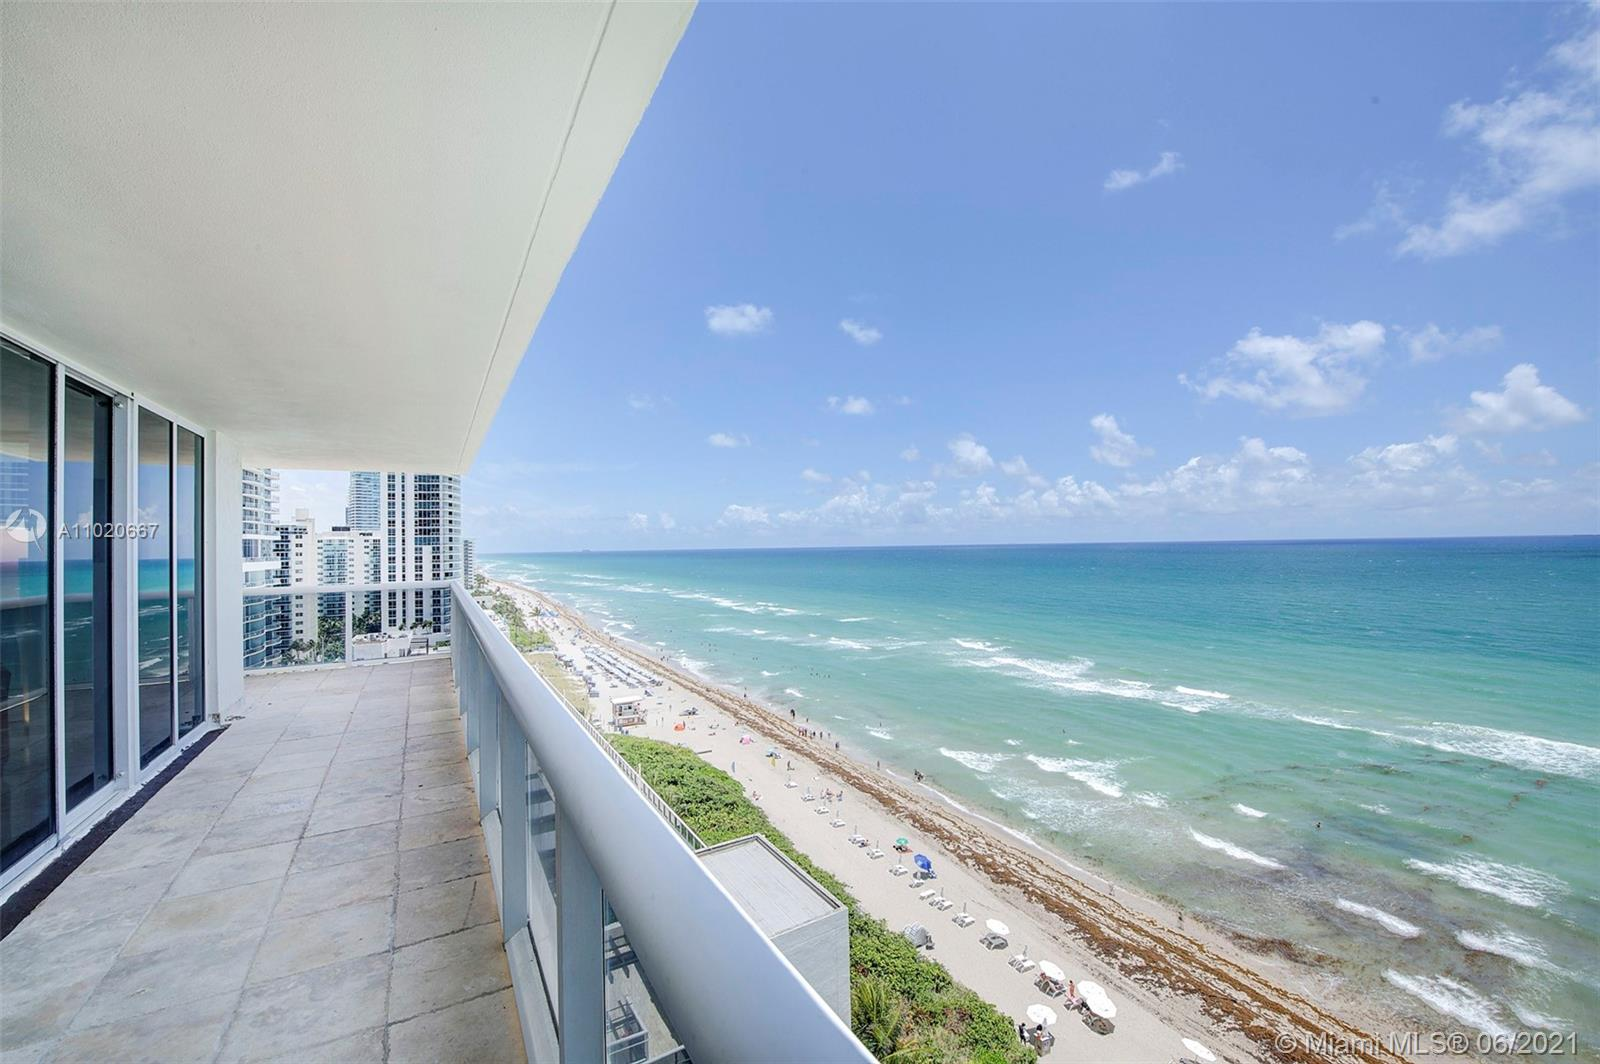 Stunning Wide Atlantic Ocean & Intercostals views from the best line at the Beach Club, corner unit wrap-around balcony. Beautiful Marble floor through the apartment, 3 bedrooms - 3bathrooms. The best amenities on the beach Club tower two, 40,000 sq ft state of art fitness club, sauna, spa, 5 pools with the bar, beach service, valet parking, close to Ft Lauderdale airport, Bal Harbour shops, Aventura Mall, and many restaurants.